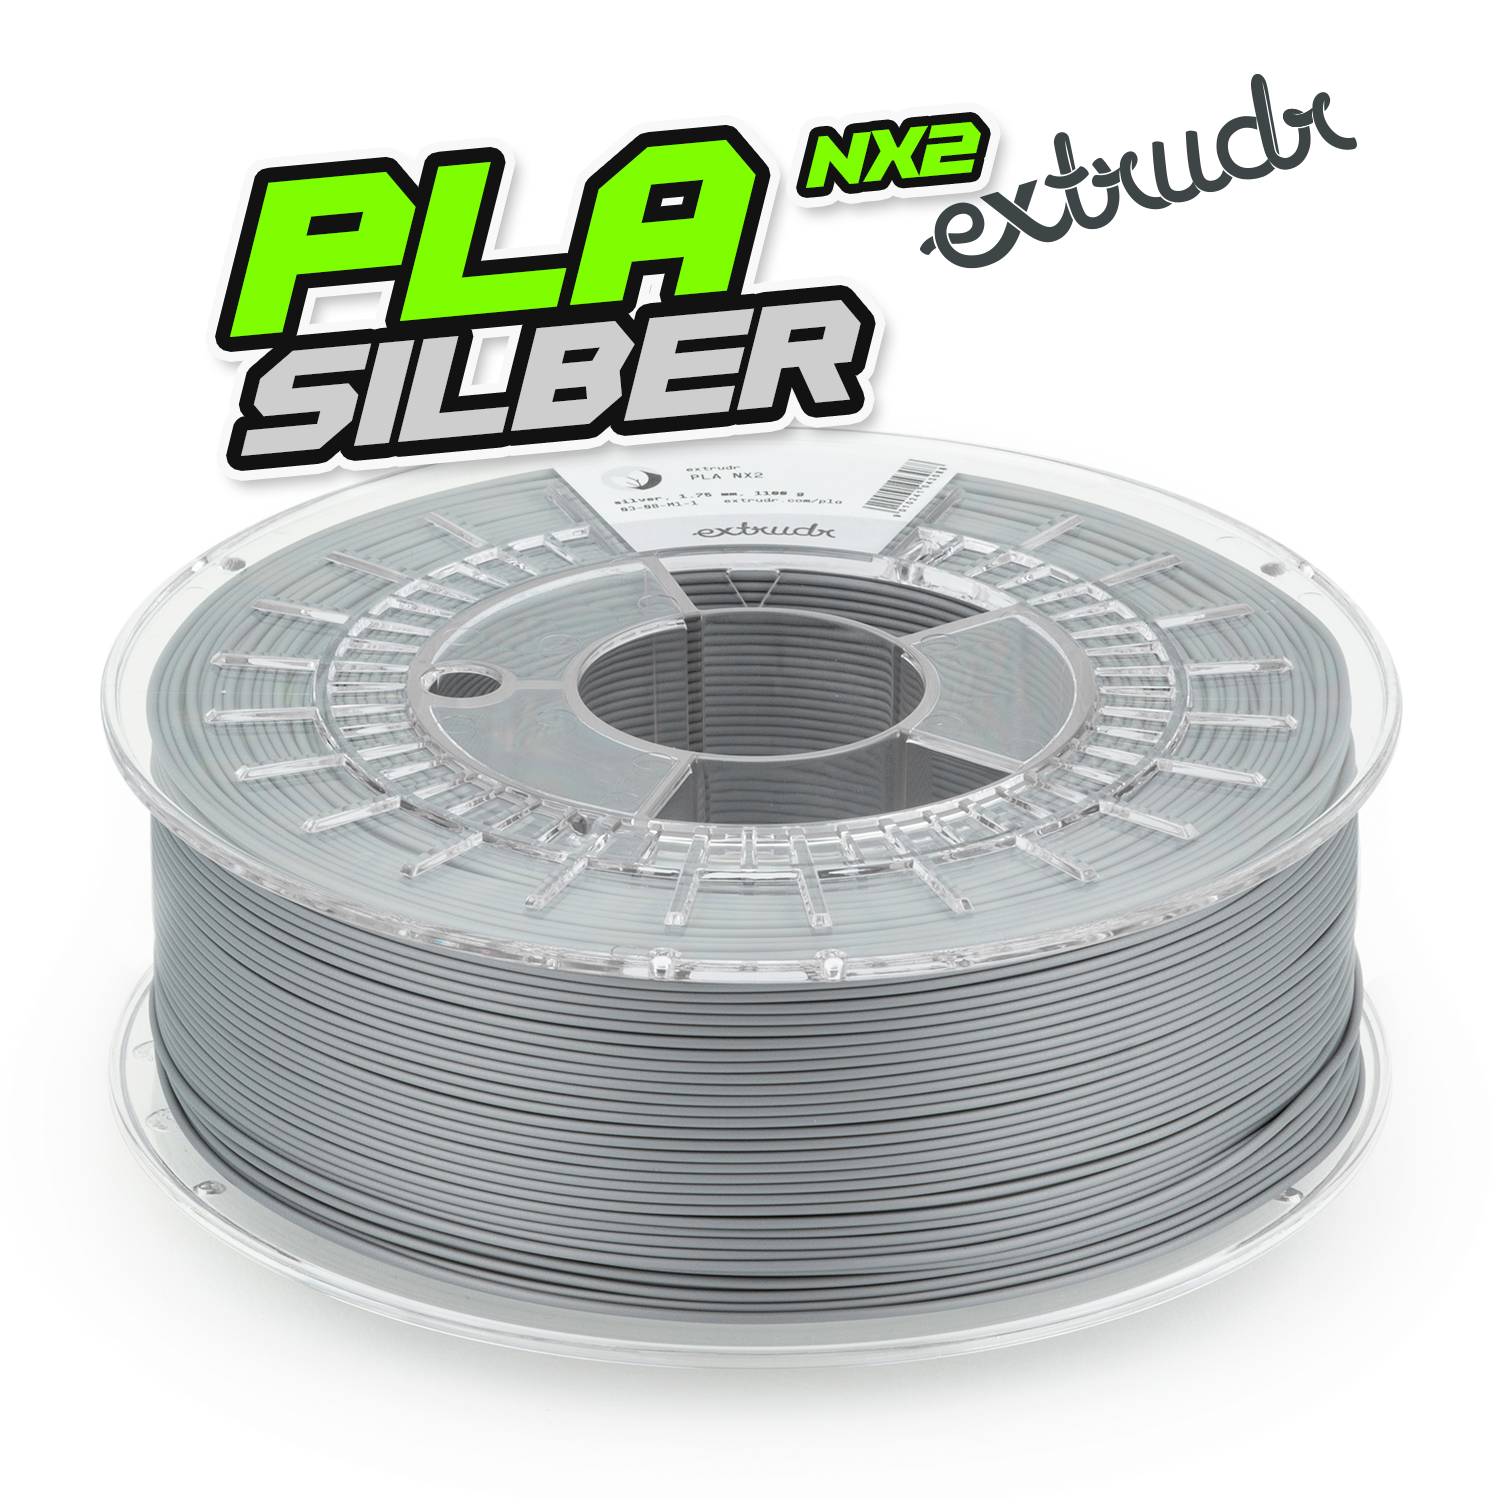 Extrudr PLA NX2 - Silber [1.75mm] (23,62€/Kg)